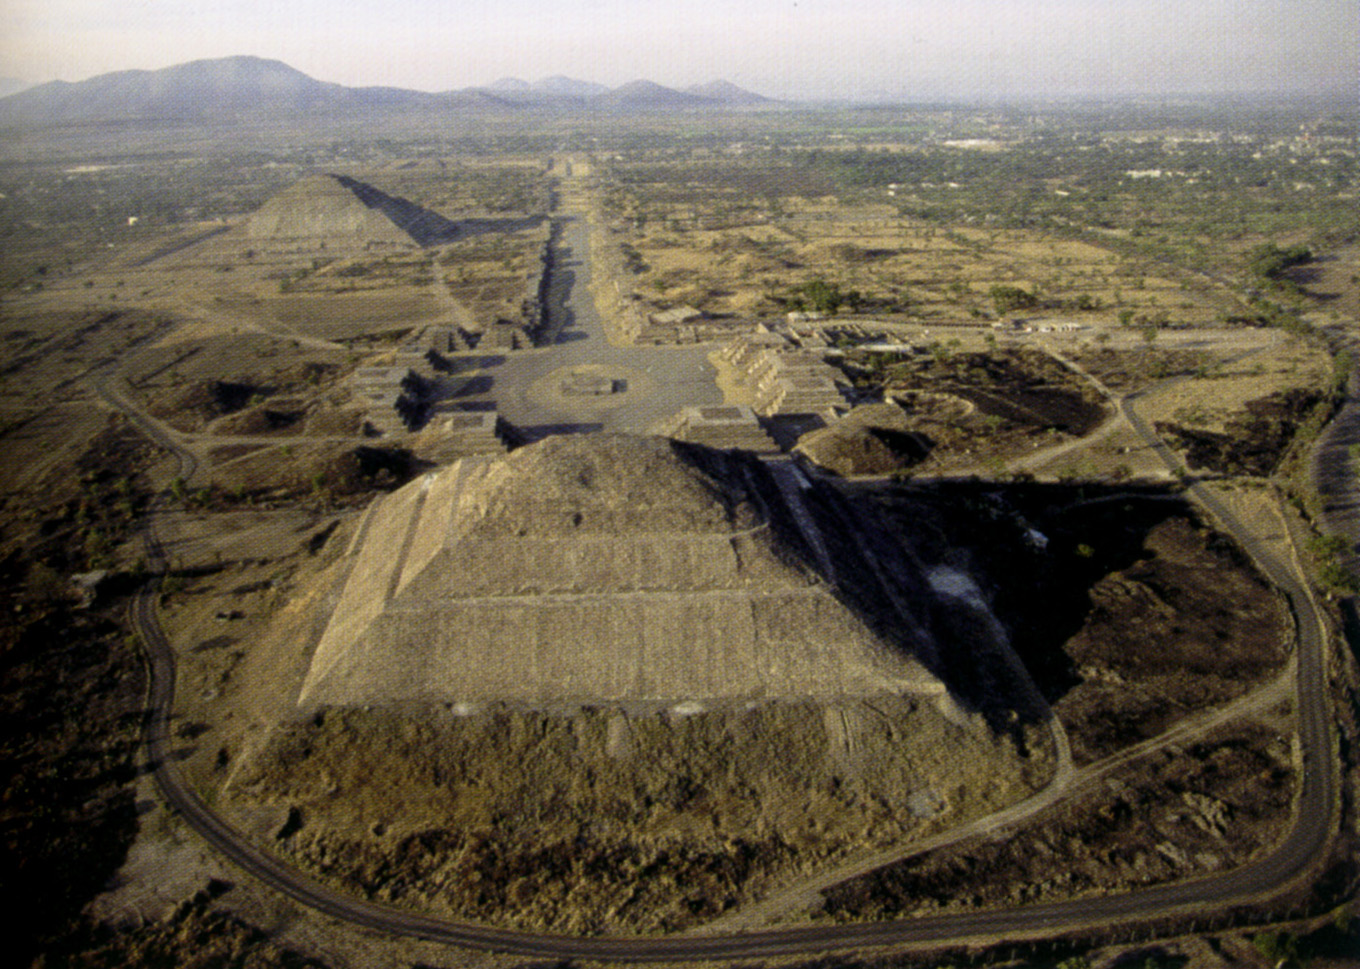 1353604511 la chaussgВe des morts et les pyramides du soleil et de la lune gВ teotihuacan the roadway of died and pyramids of the sun and the moon with teotihuacan